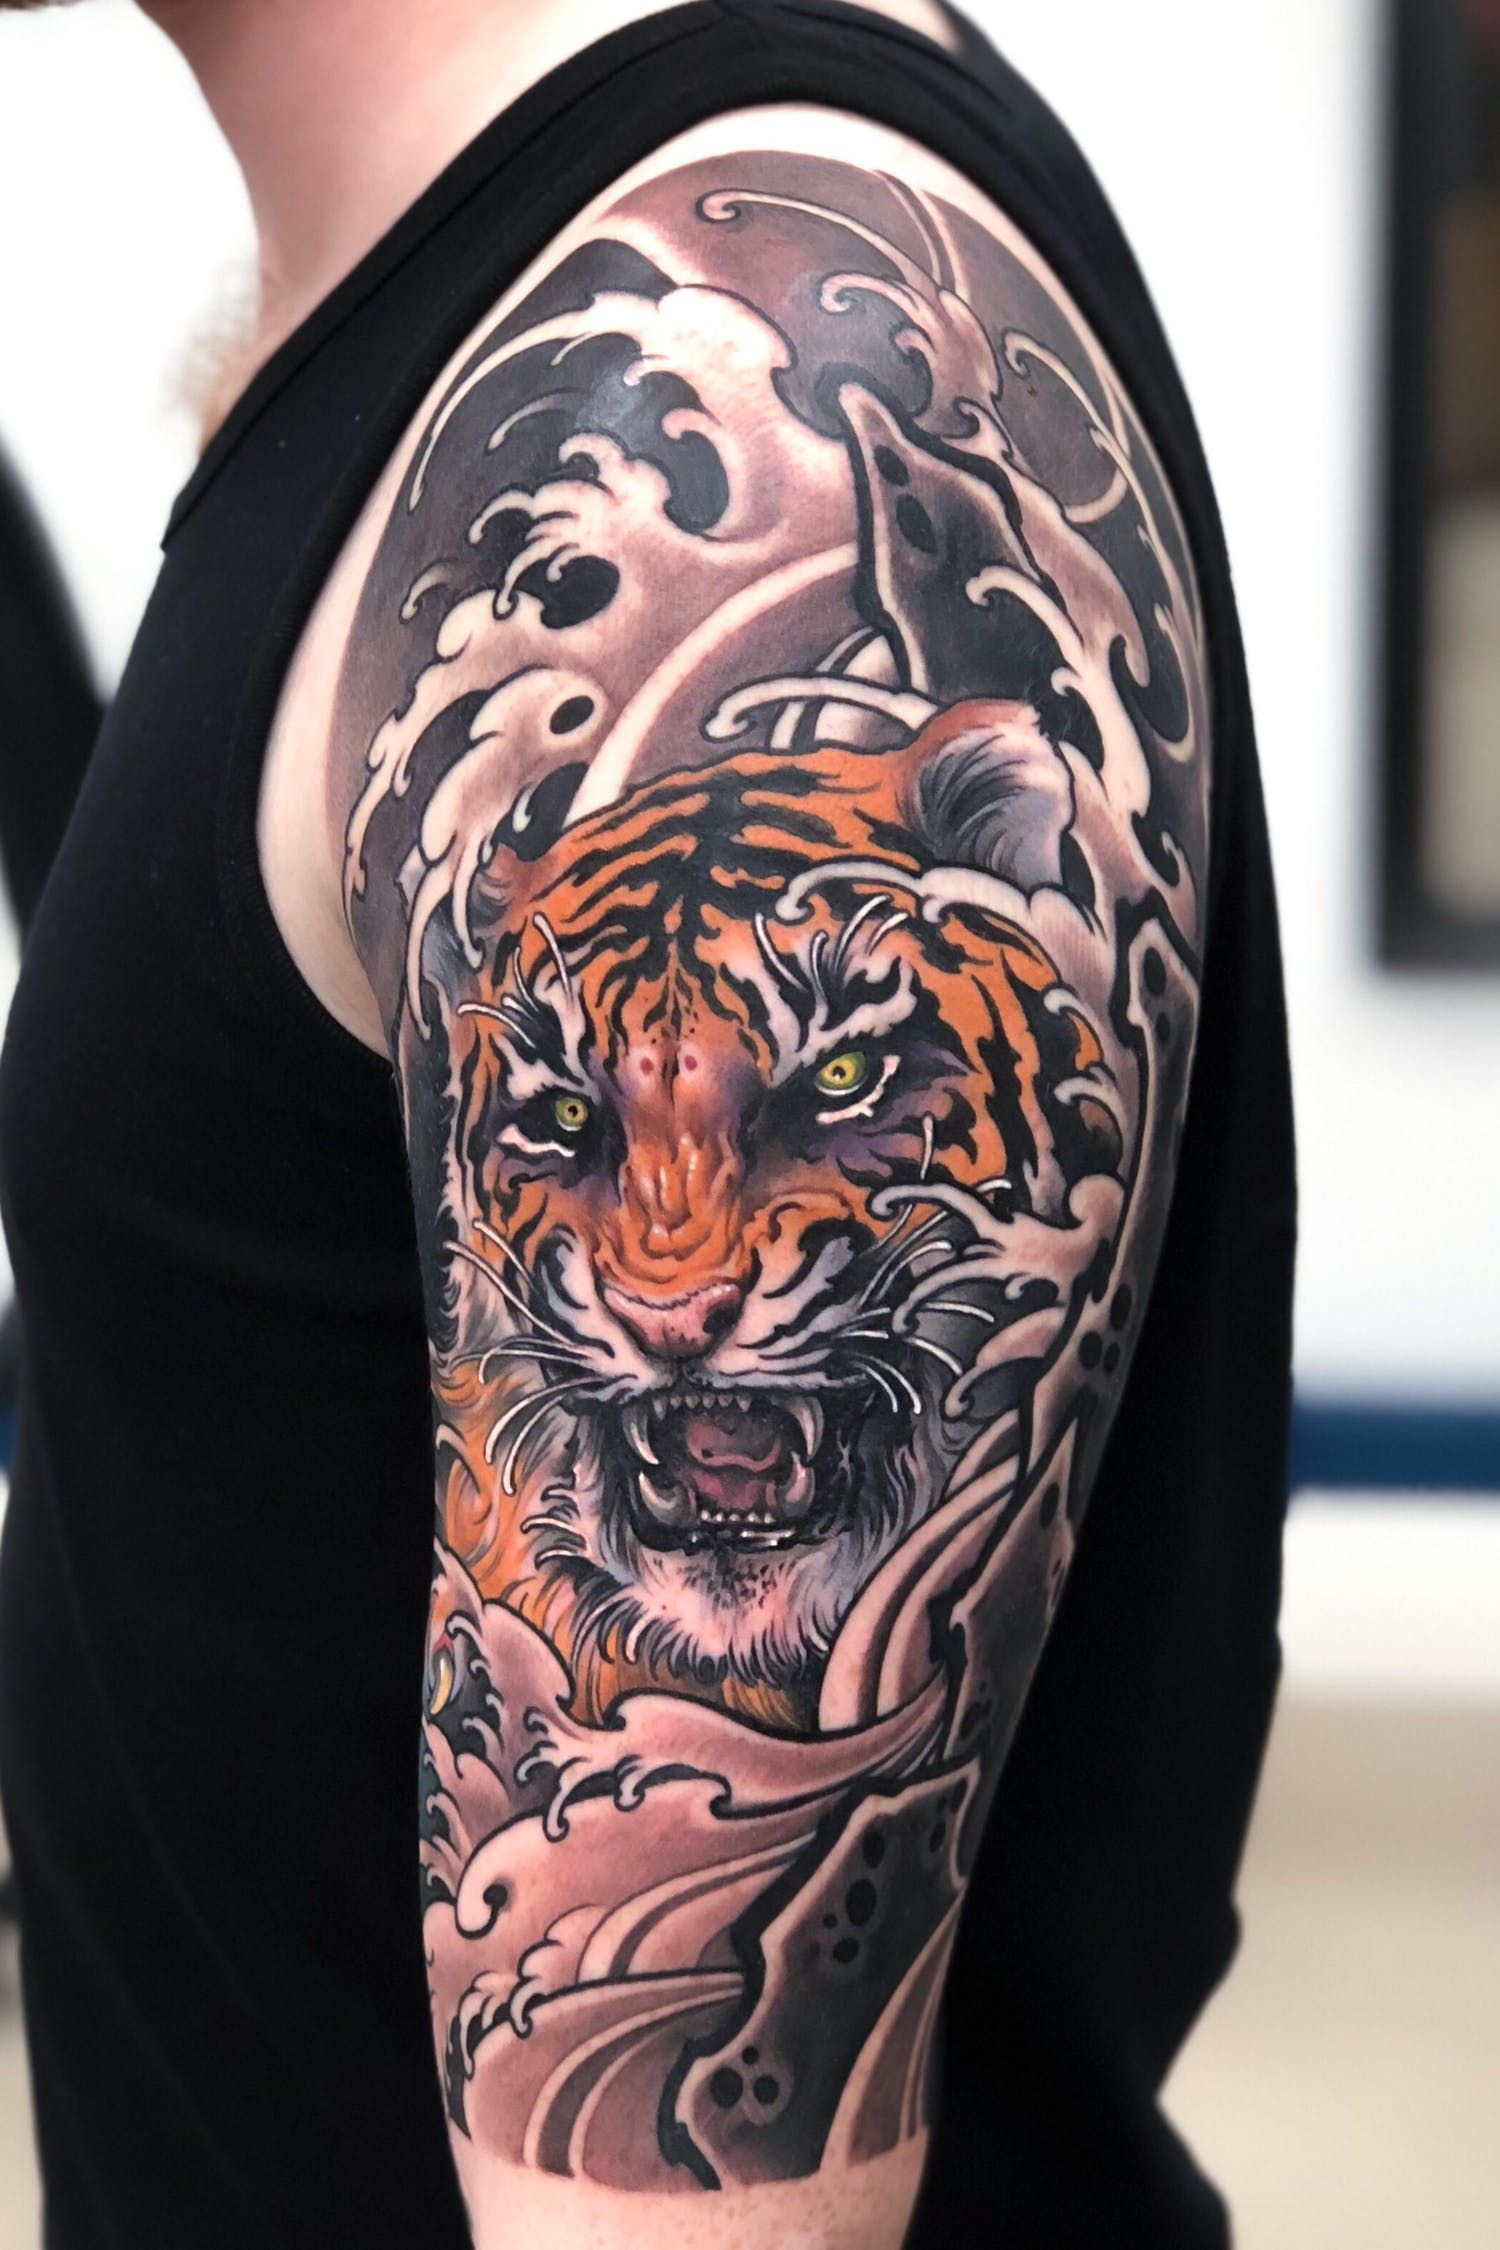 Tiger Rocks And Waves Tattoodo Inkjecta Wearesorrymom Killerinktattoo Tiger Irezumi Ja Tiger Tattoo Sleeve Japanese Tattoos For Men Japanese Tattoo